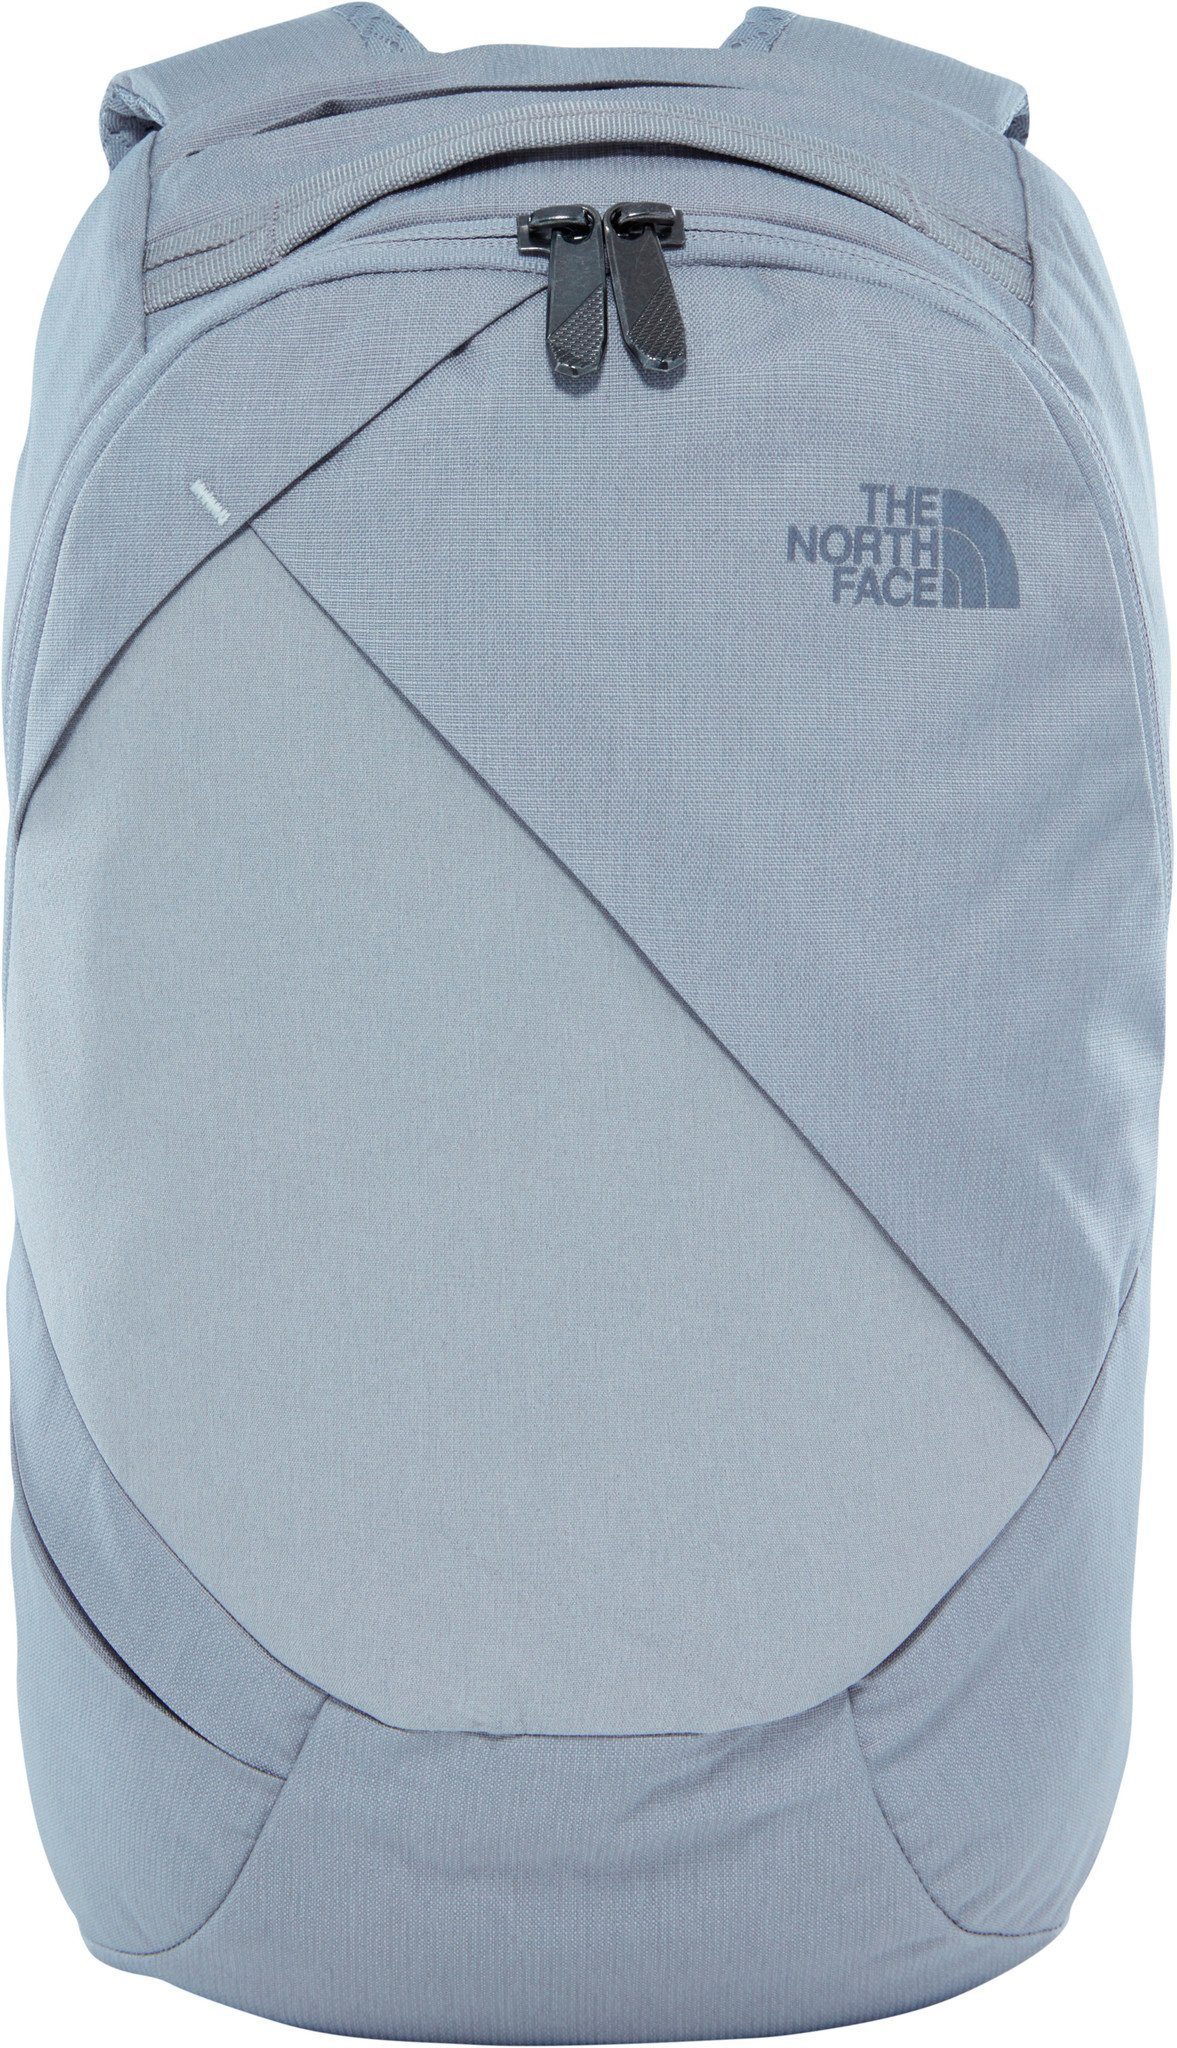 The North Face Wanderrucksack »Electra Backpack 12 L«